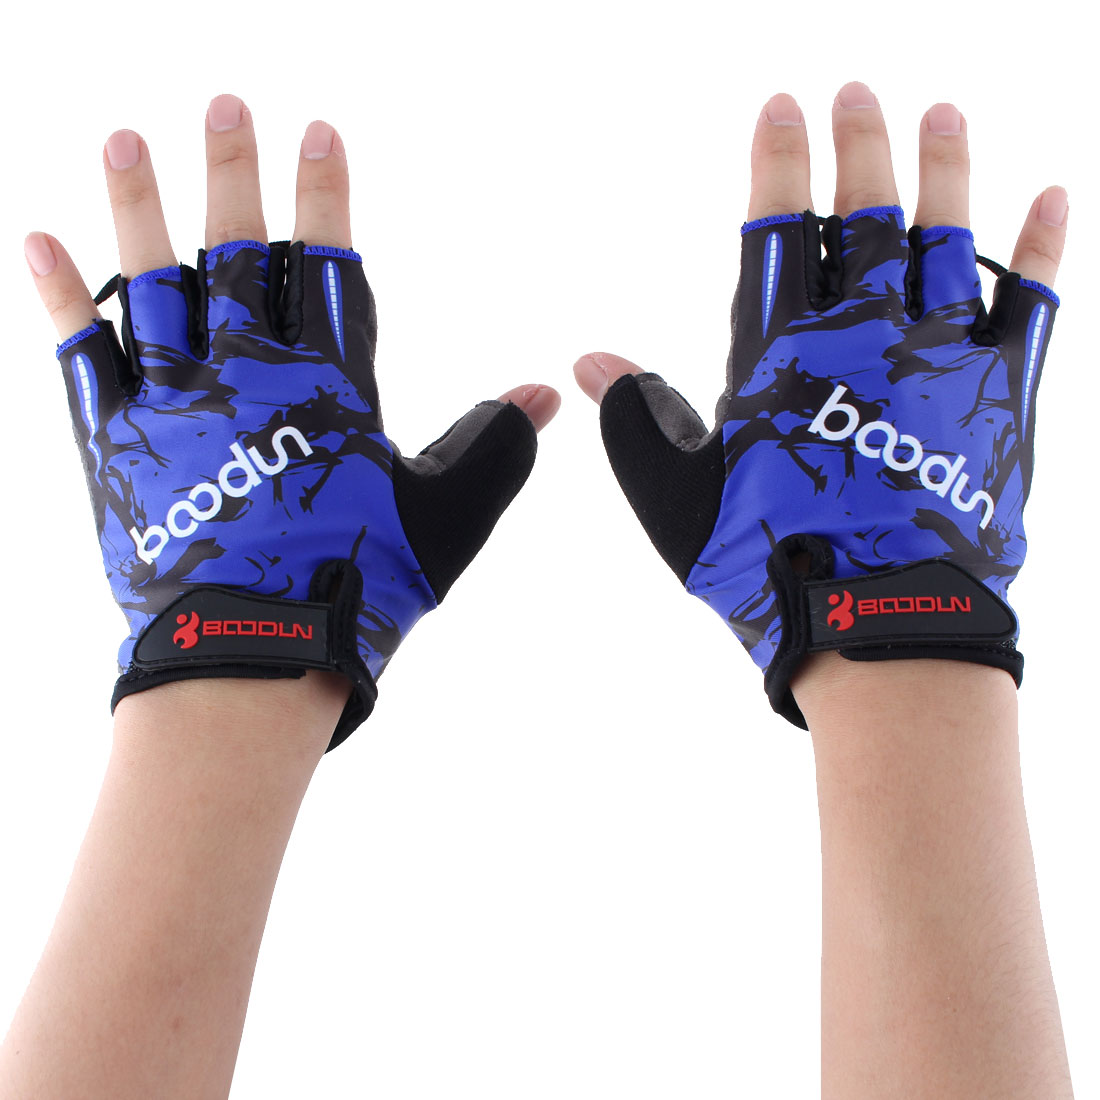 BOODUN Authorized Polyester Exercise Sports Gym Lifting Training Bodybuilding Protector Half Finger Fitness Gloves Blue XXL Pair